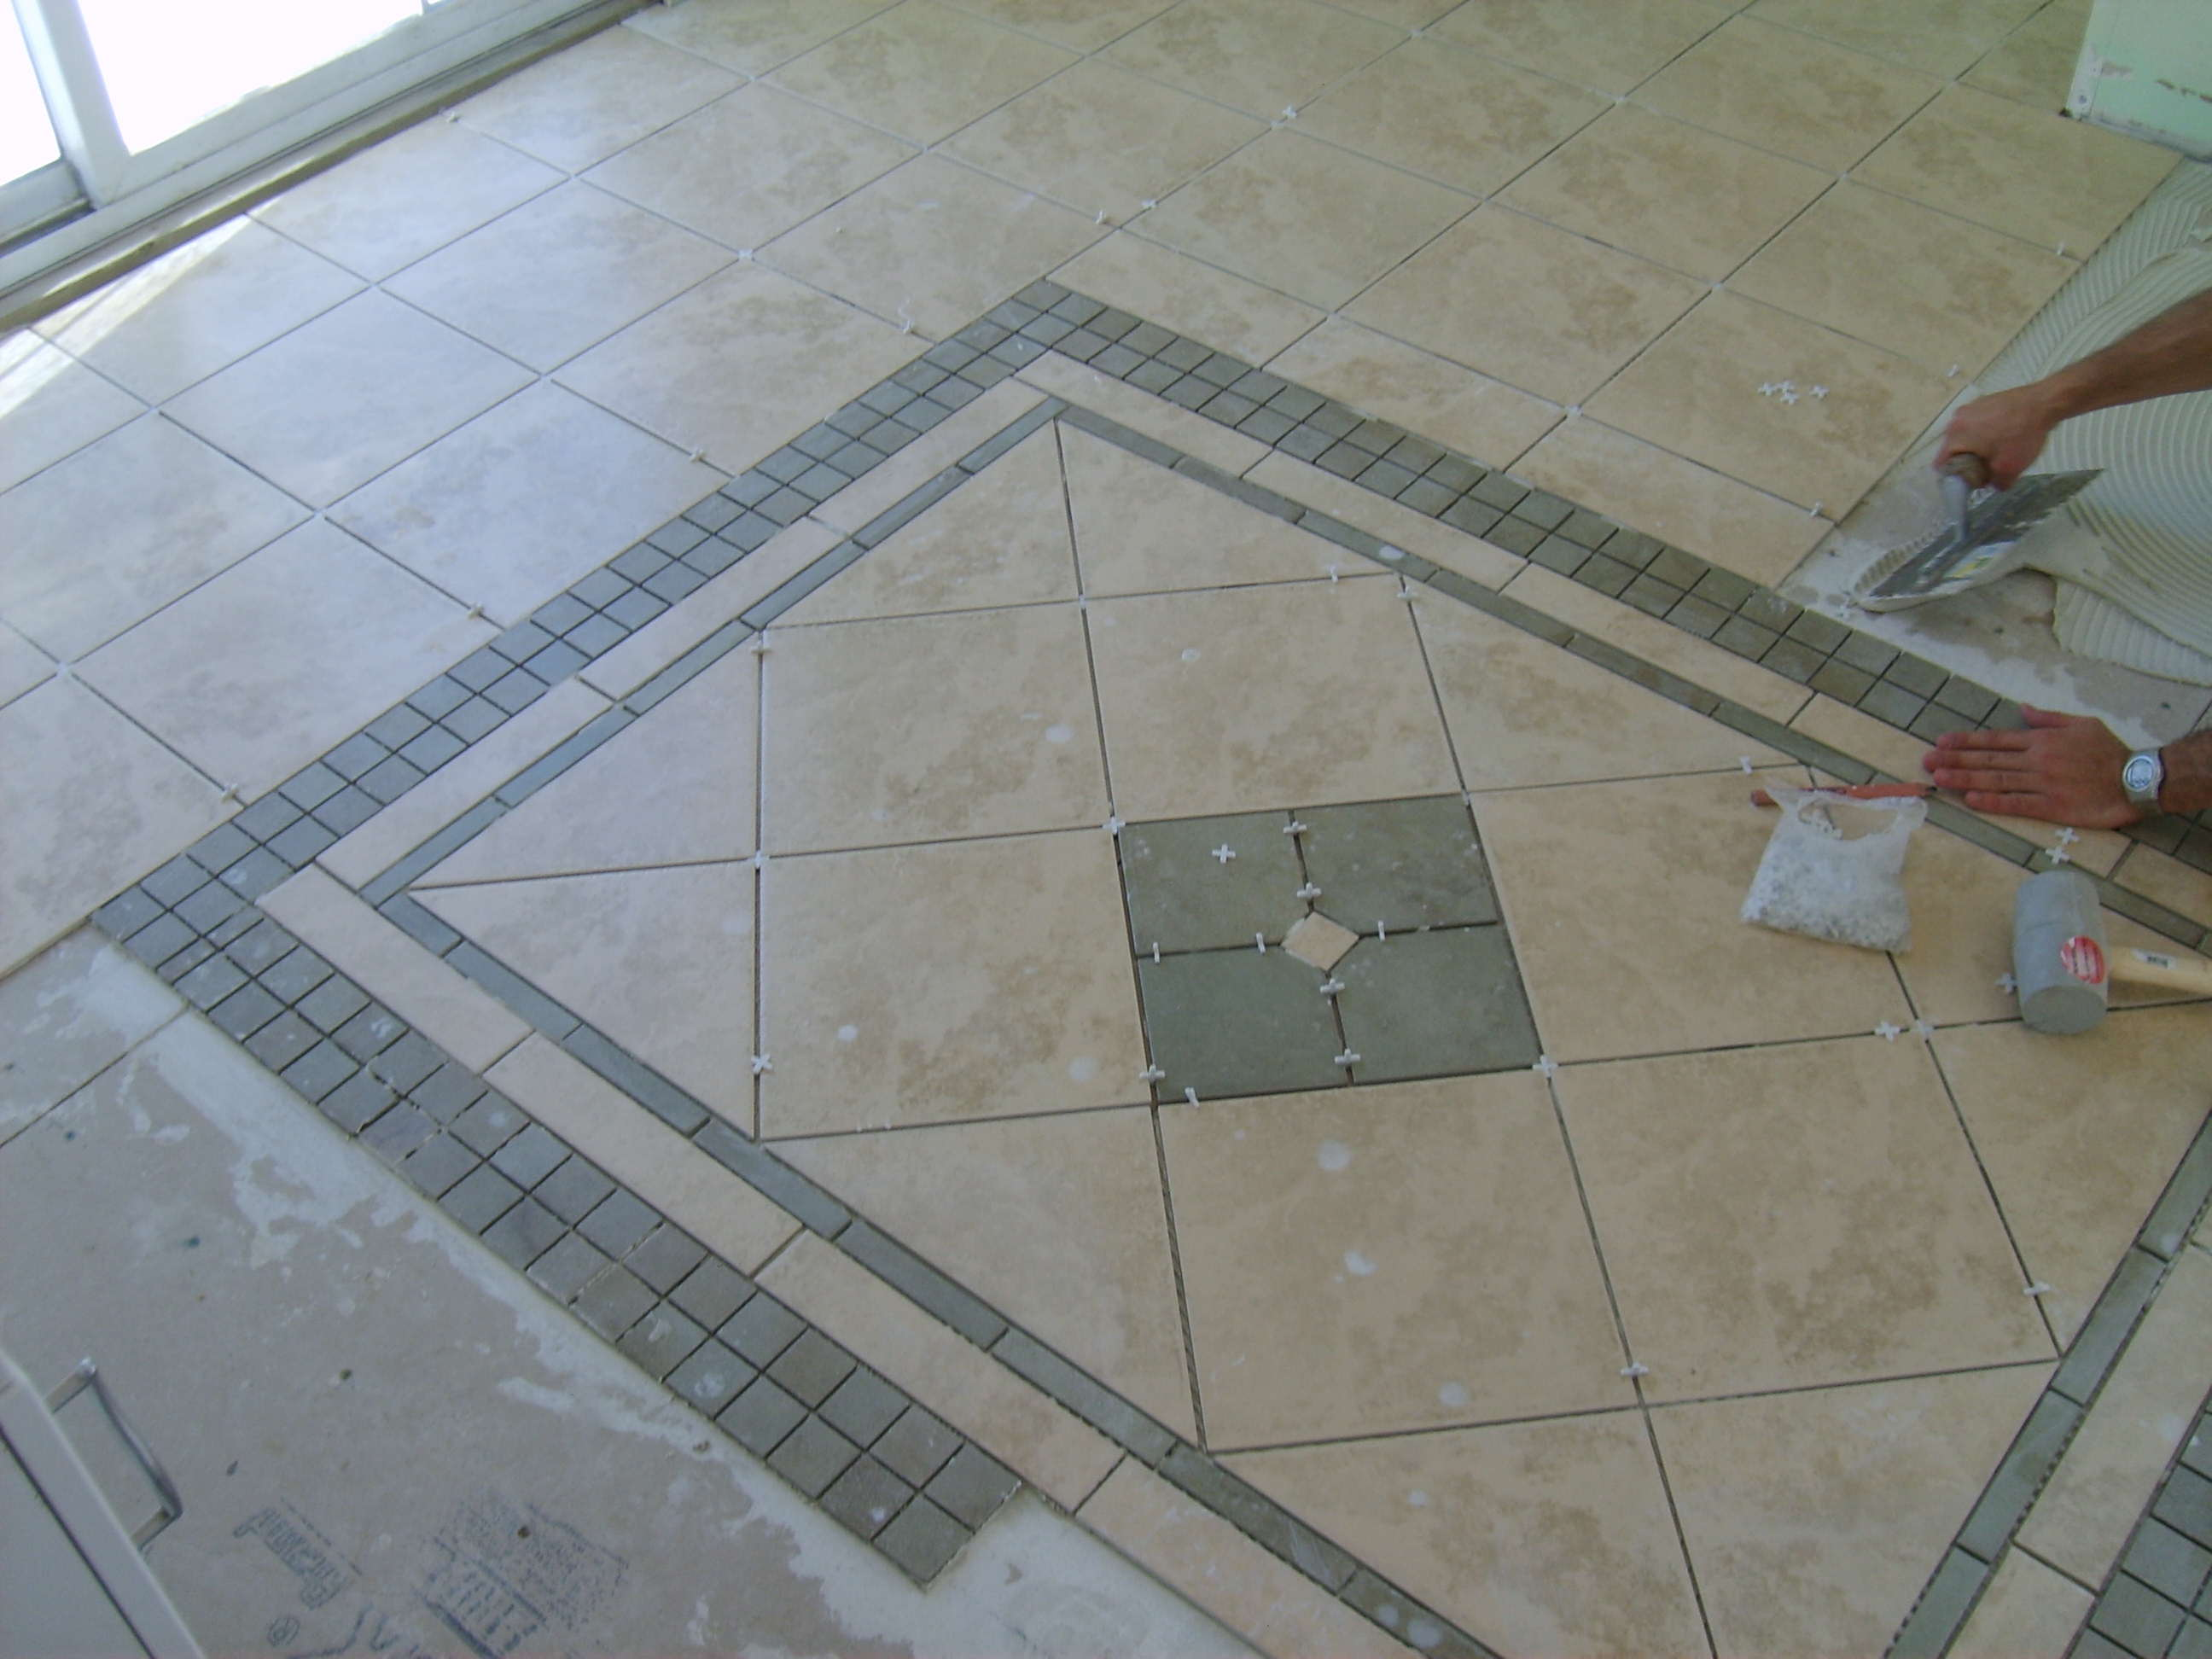 ... Installing Bathroom Floor Tile ...